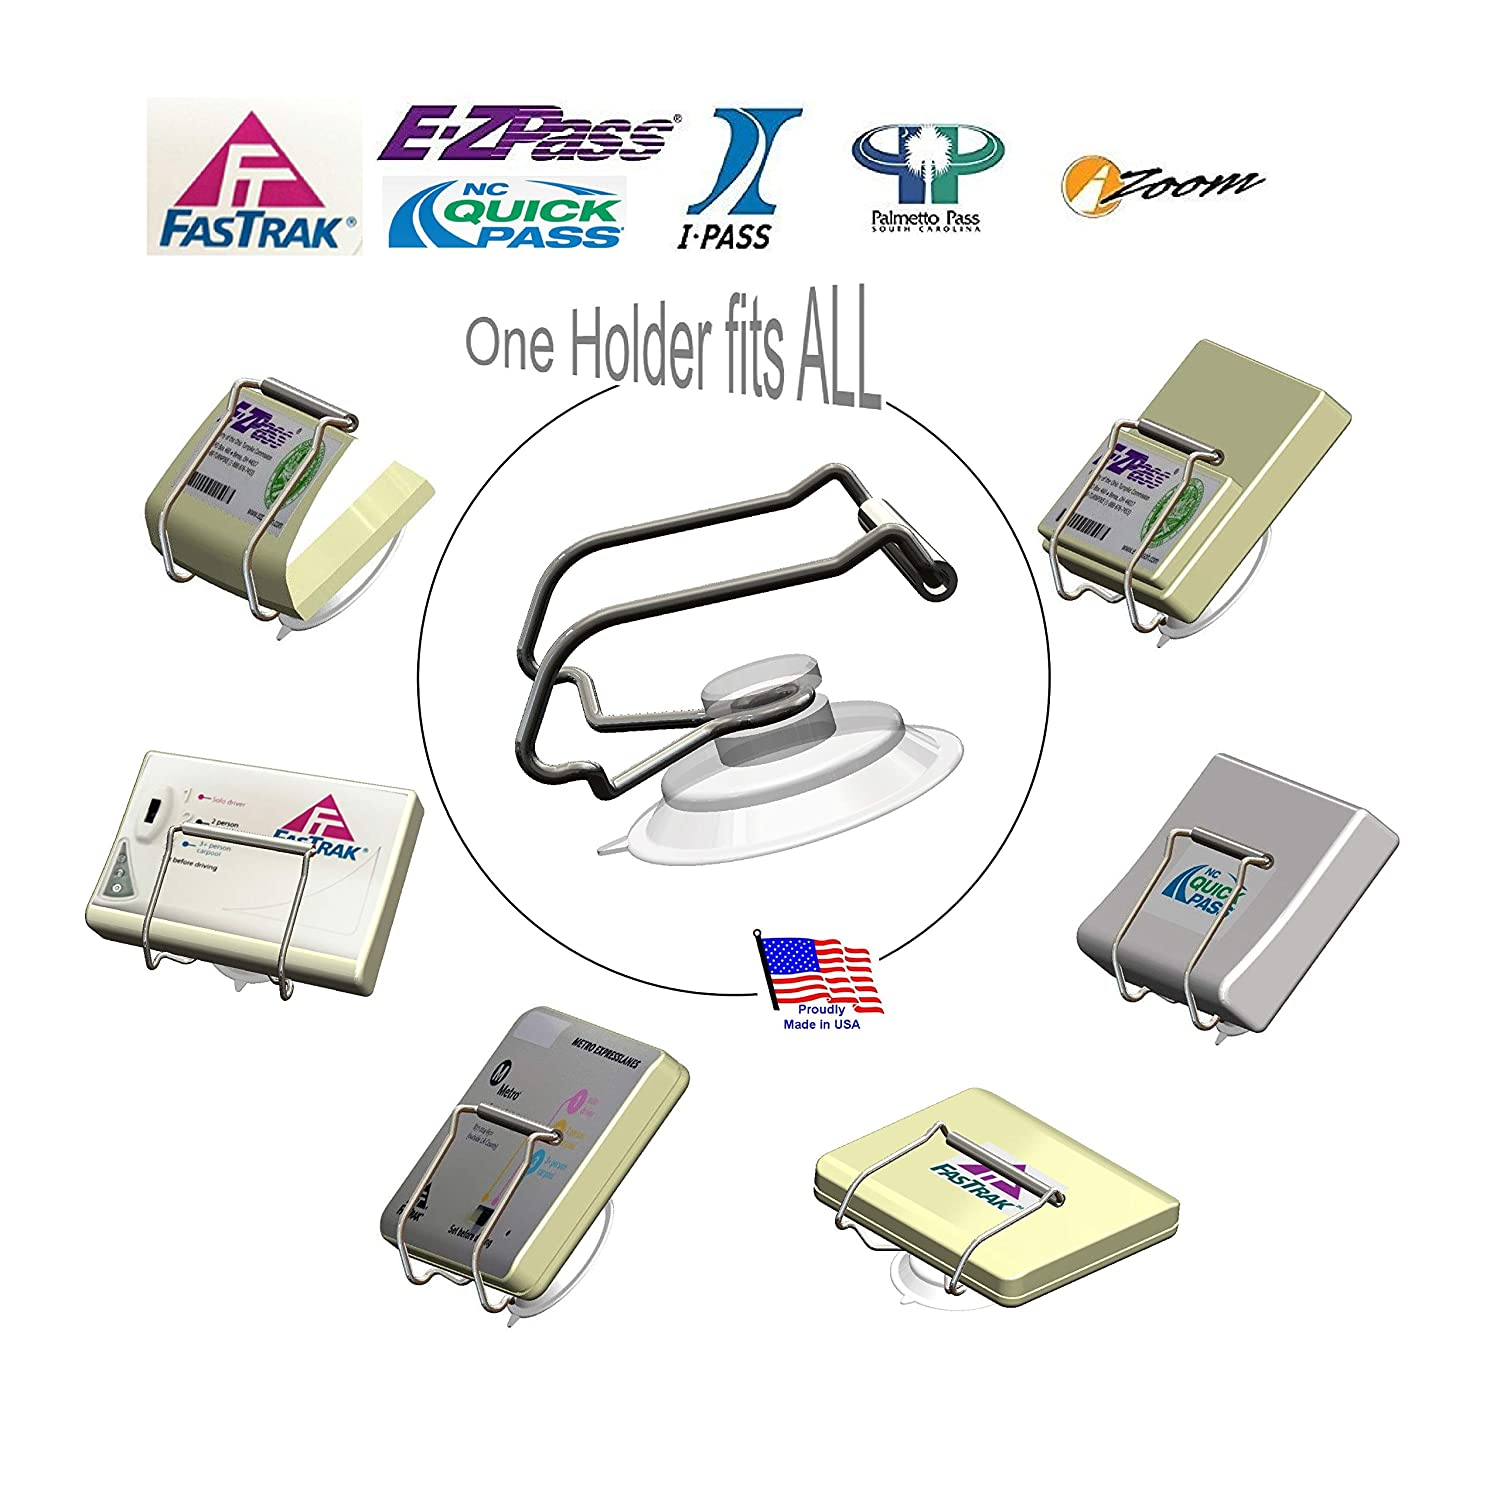 Indestructible holder fits Mini and OLD size EZ Pass Holder only I Pass I Zoom Made in USA not the Flex JL Safety EZ Pass-Port EZP300 PalPass hard case and FasTrak transponders